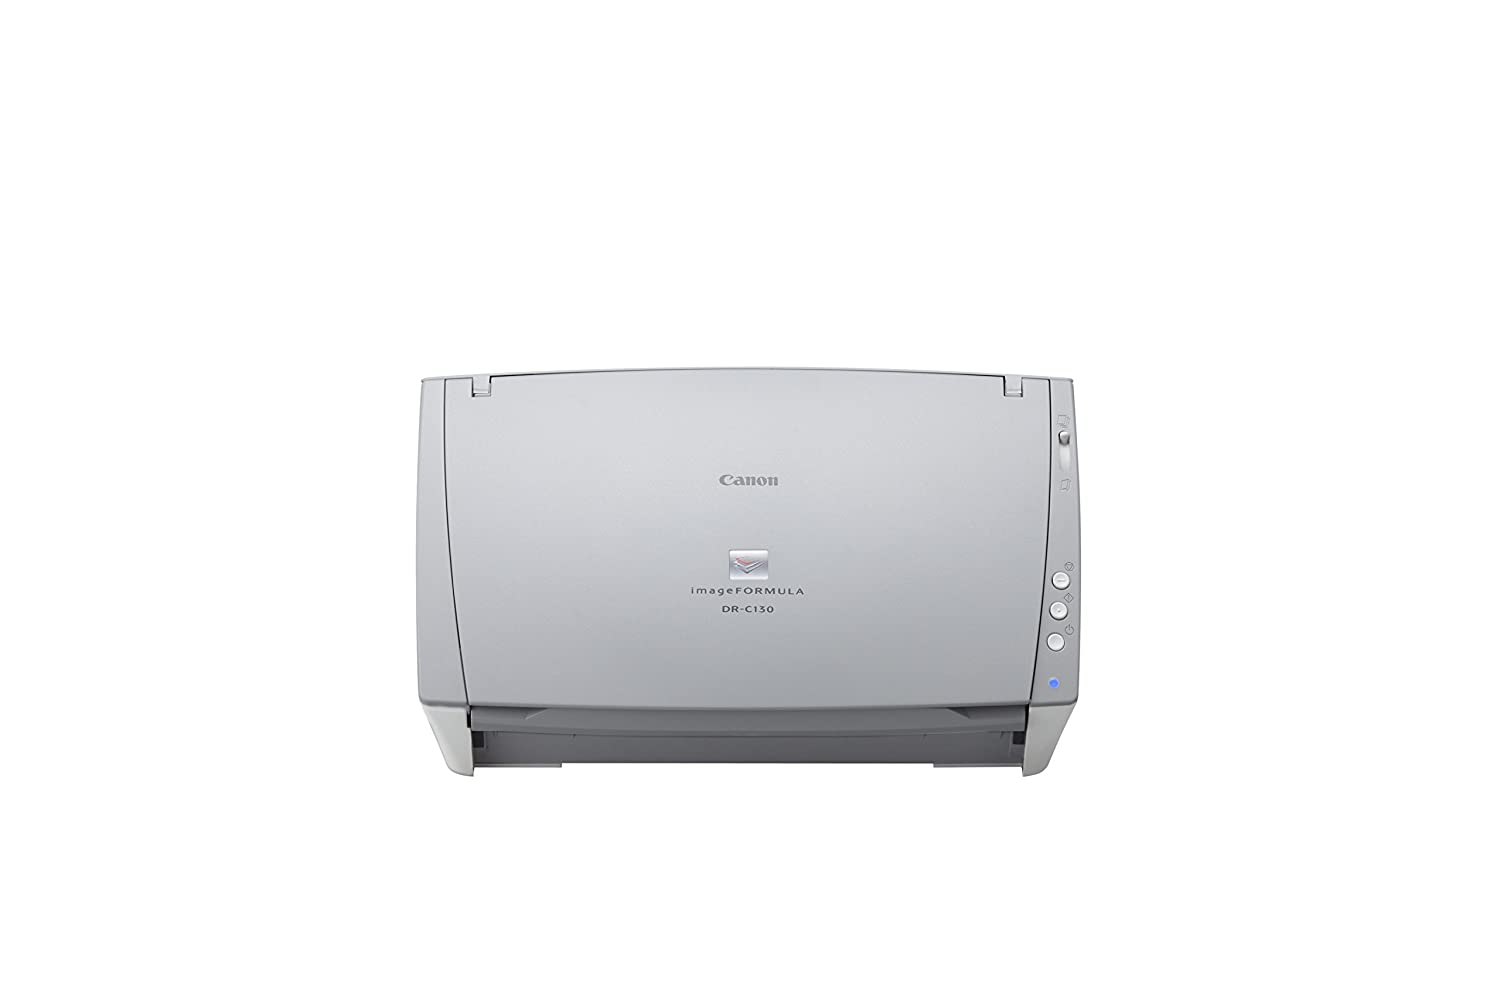 Canon DR-C130 Scanner 6907B003AA